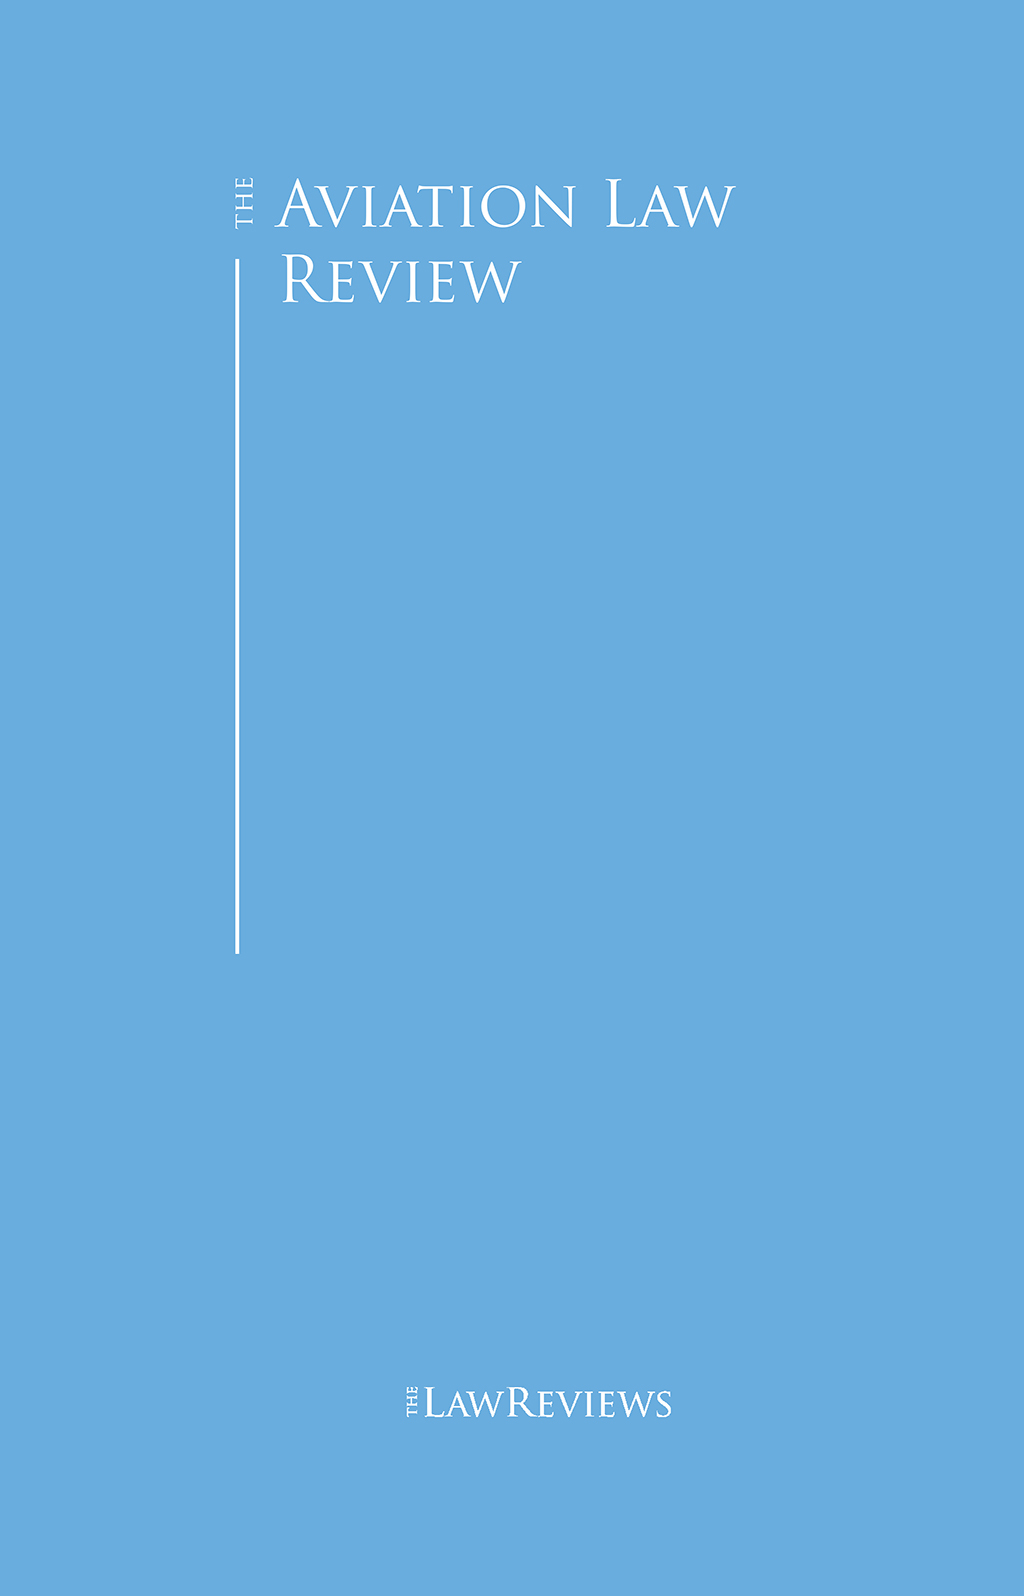 The Aviation Law Review